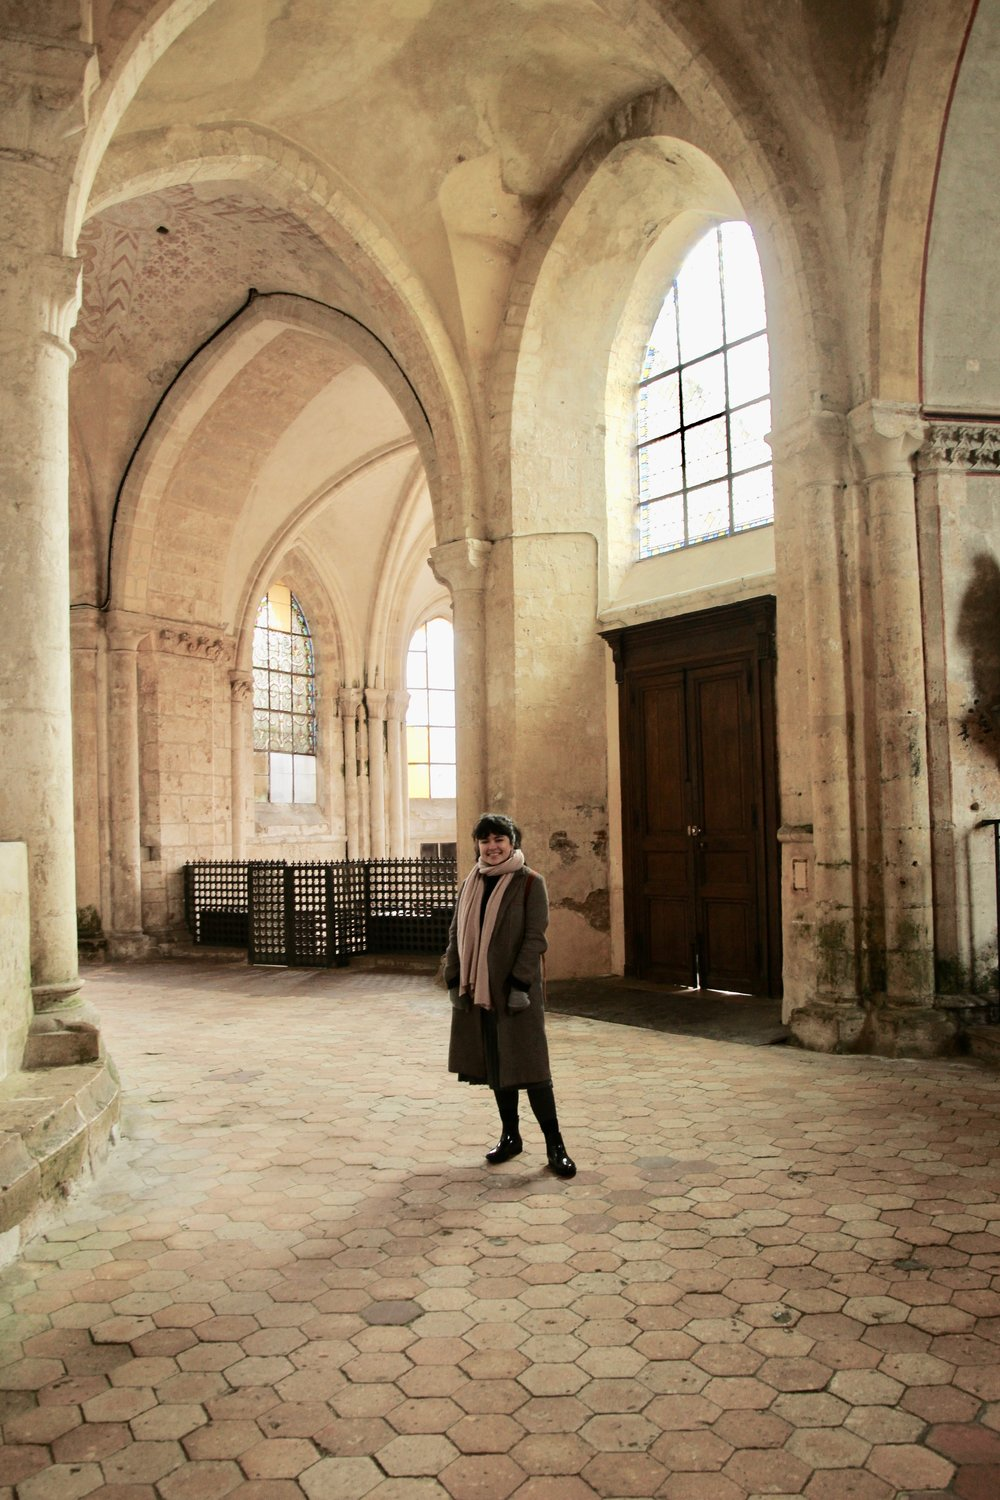 This picture was actually taken on a day trip to Chartres, when we snuck into a church and a castle •<:^)